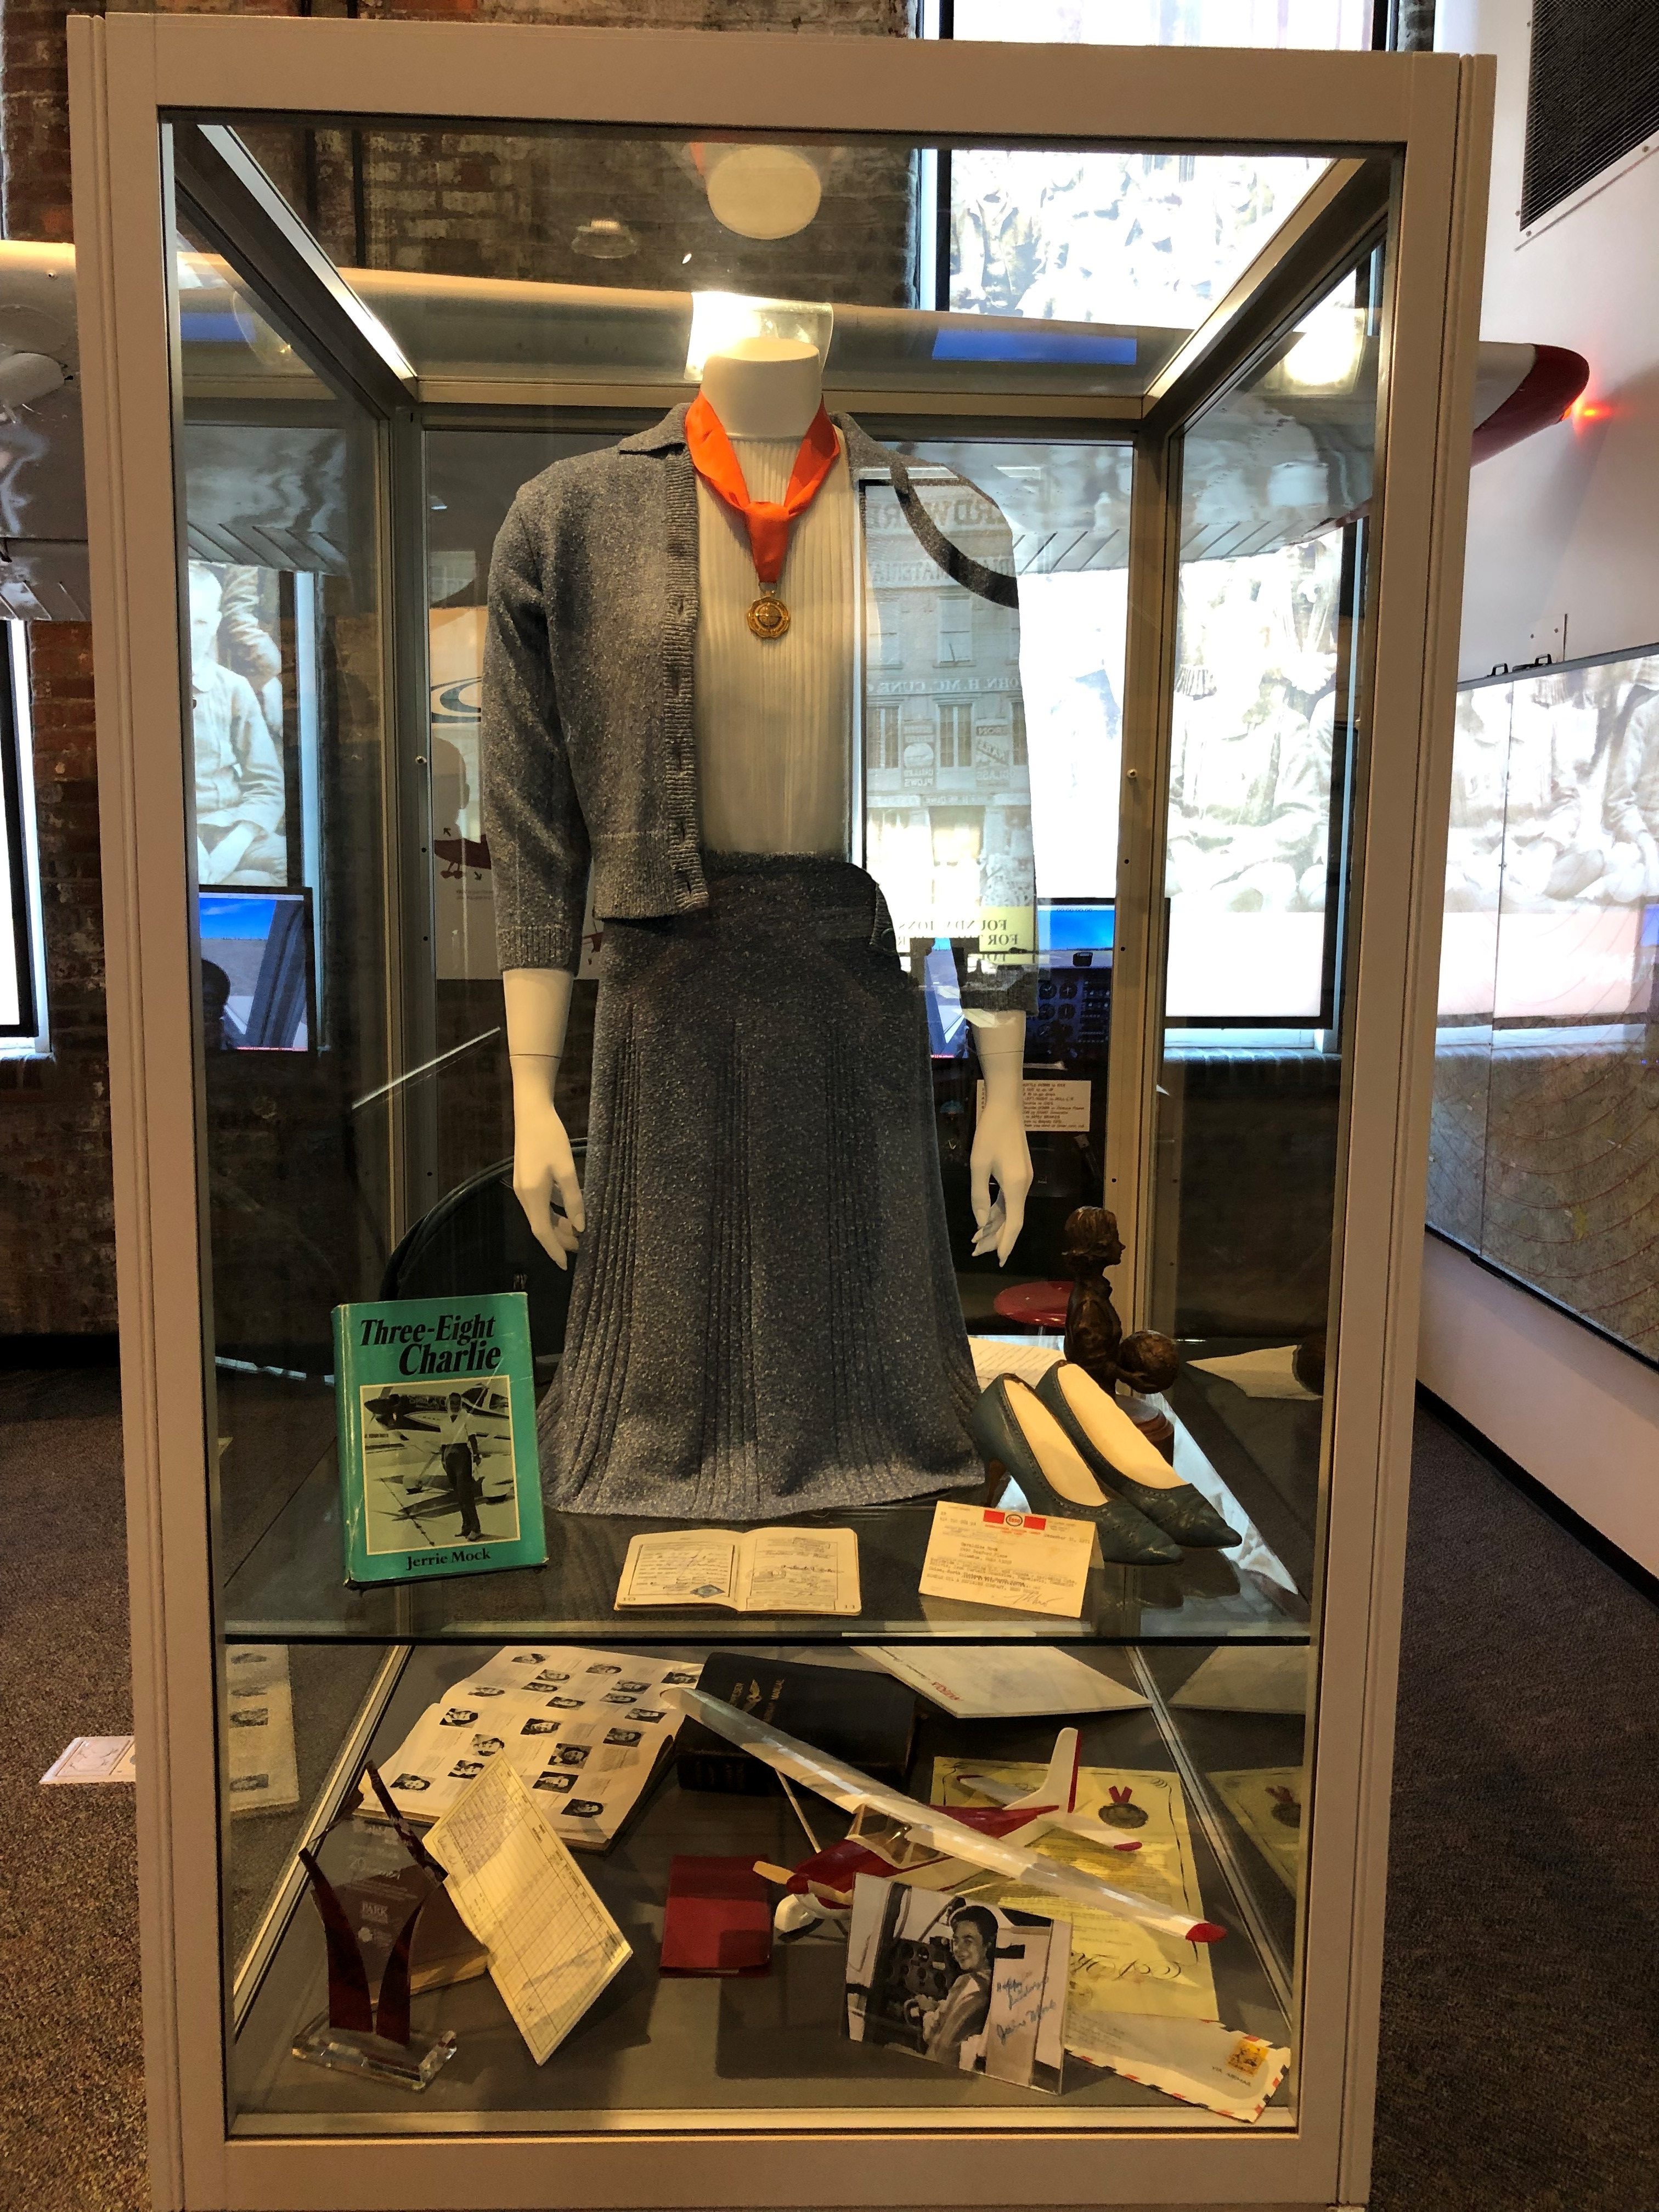 Jerrie battled against many expectations that were put upon her due to being a woman. Notably, she made her flight in a skirt, blouse, and high heels in order to appear respectable throughout her flight. Her original outfit, along with many medals, letters, books, and other memorabilia are on display.